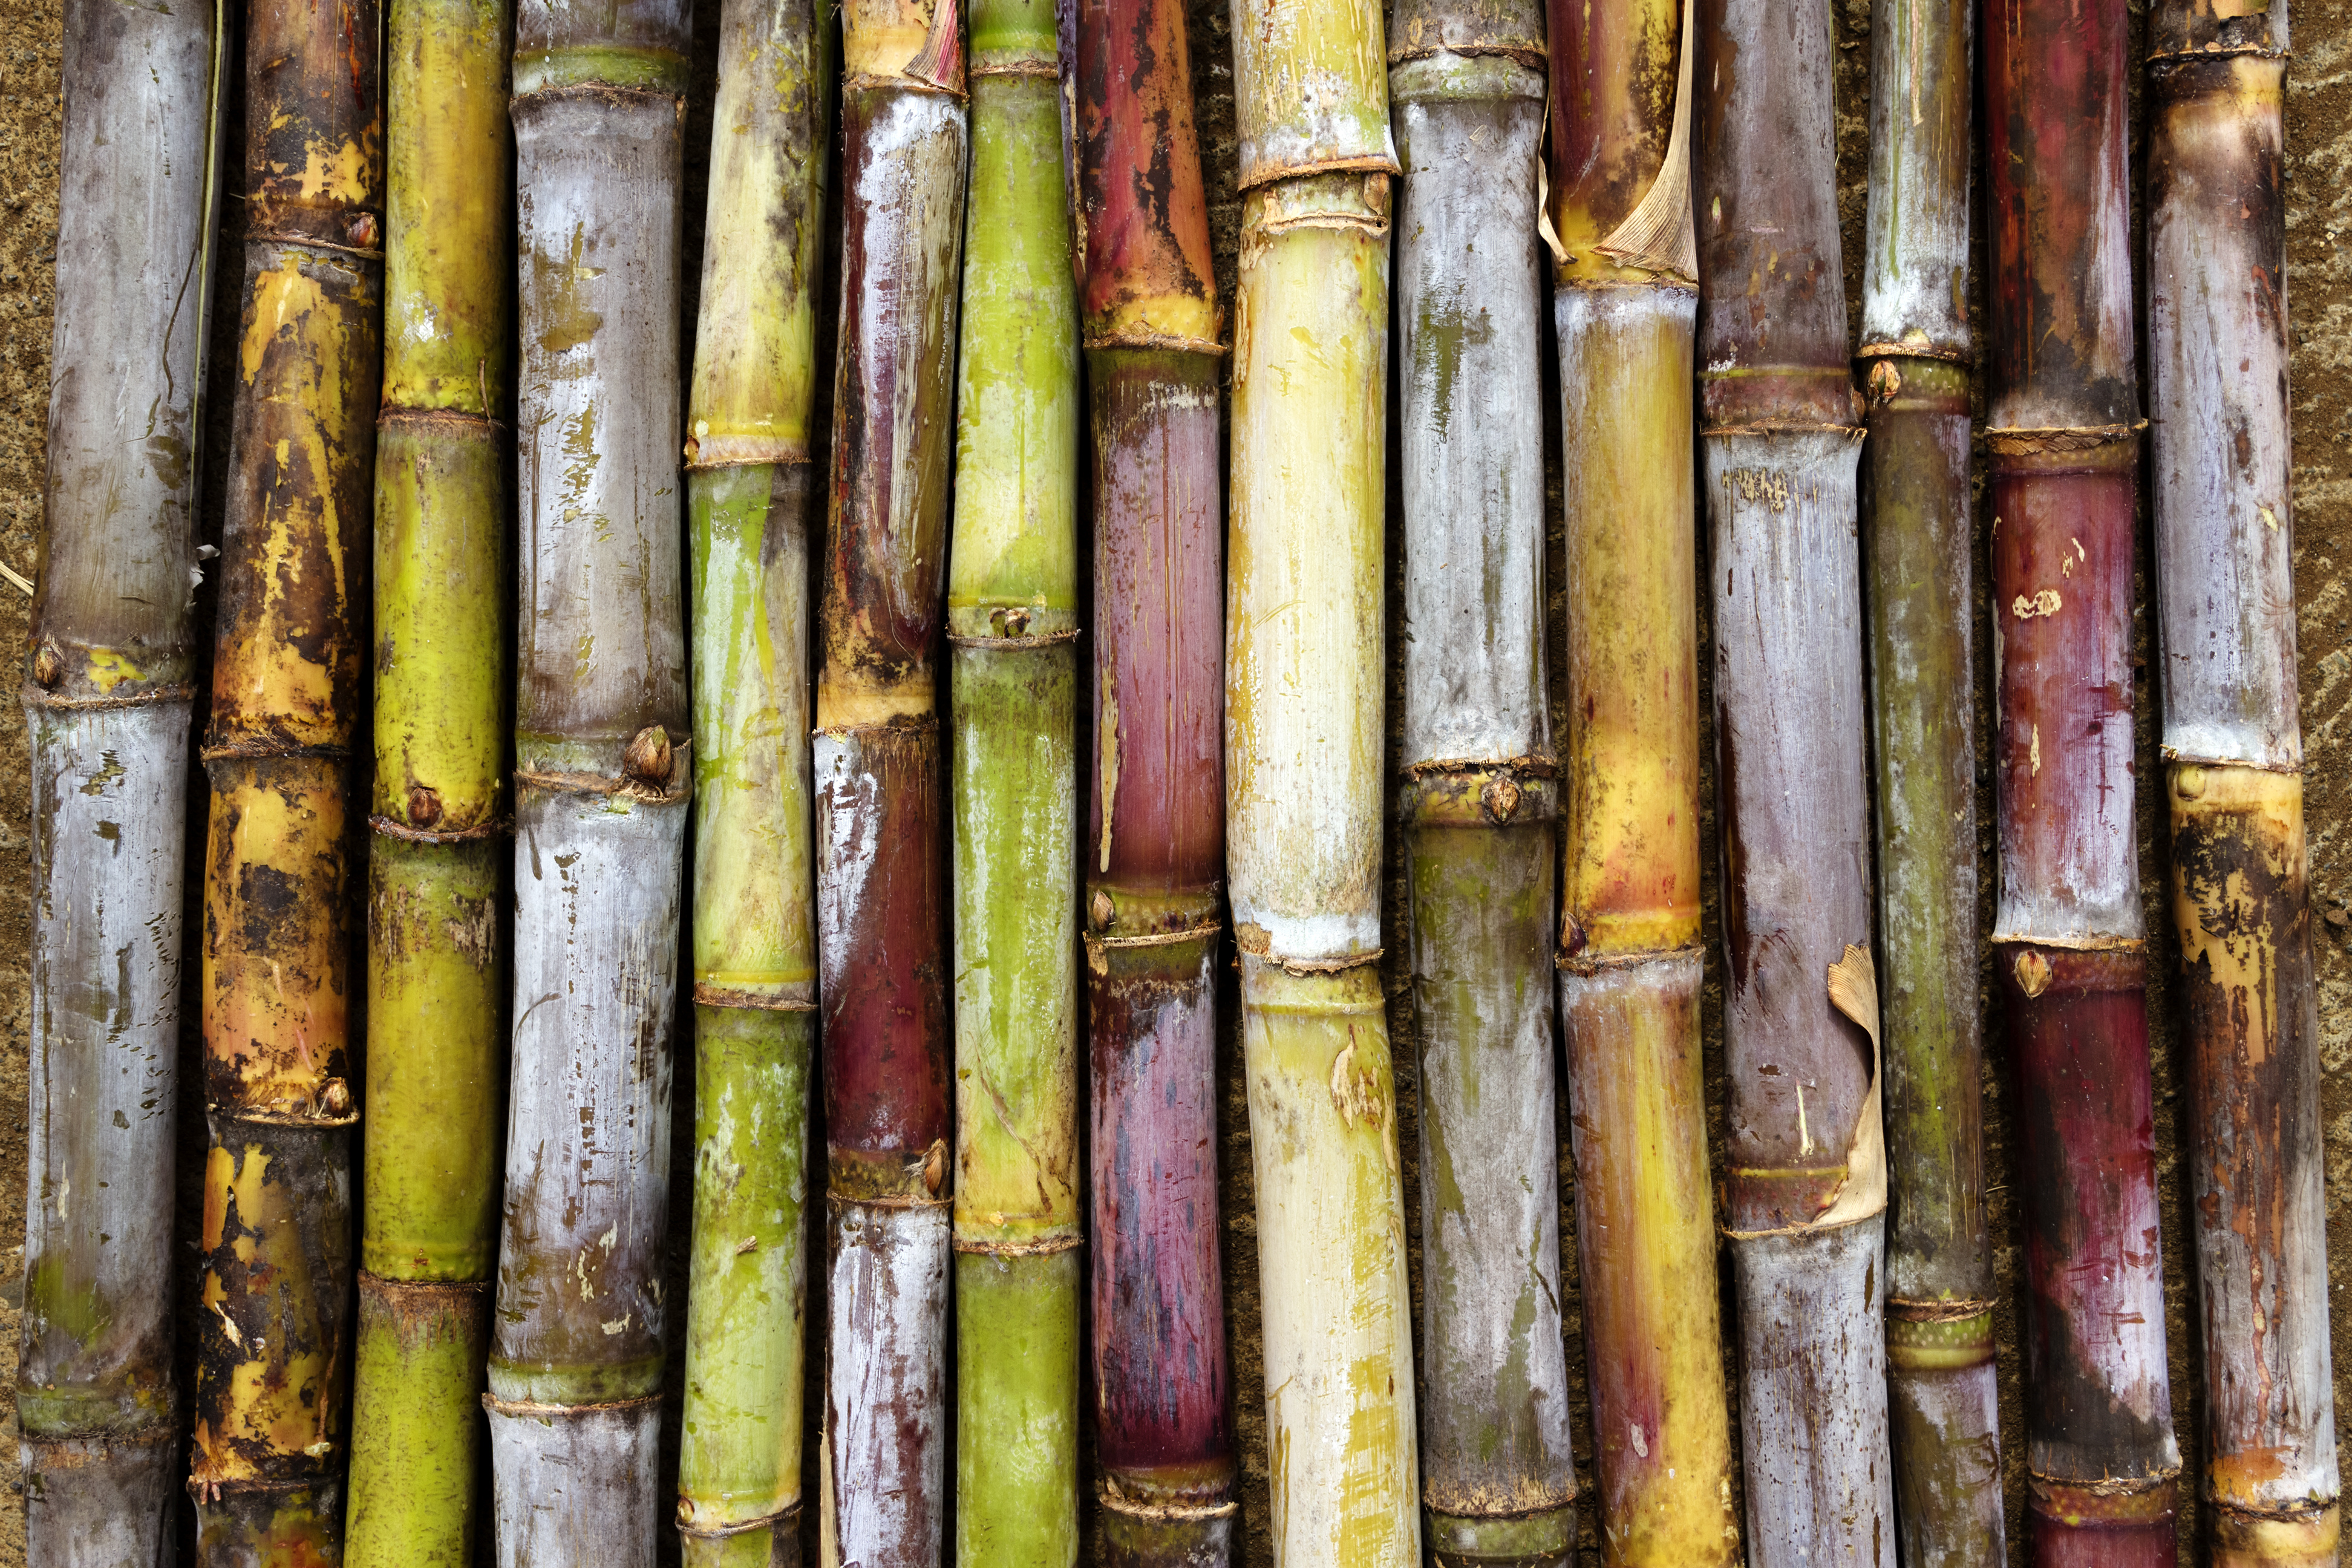 SUGARCANE SPIRITS - THE EXTENDED FAMILY OF RUM